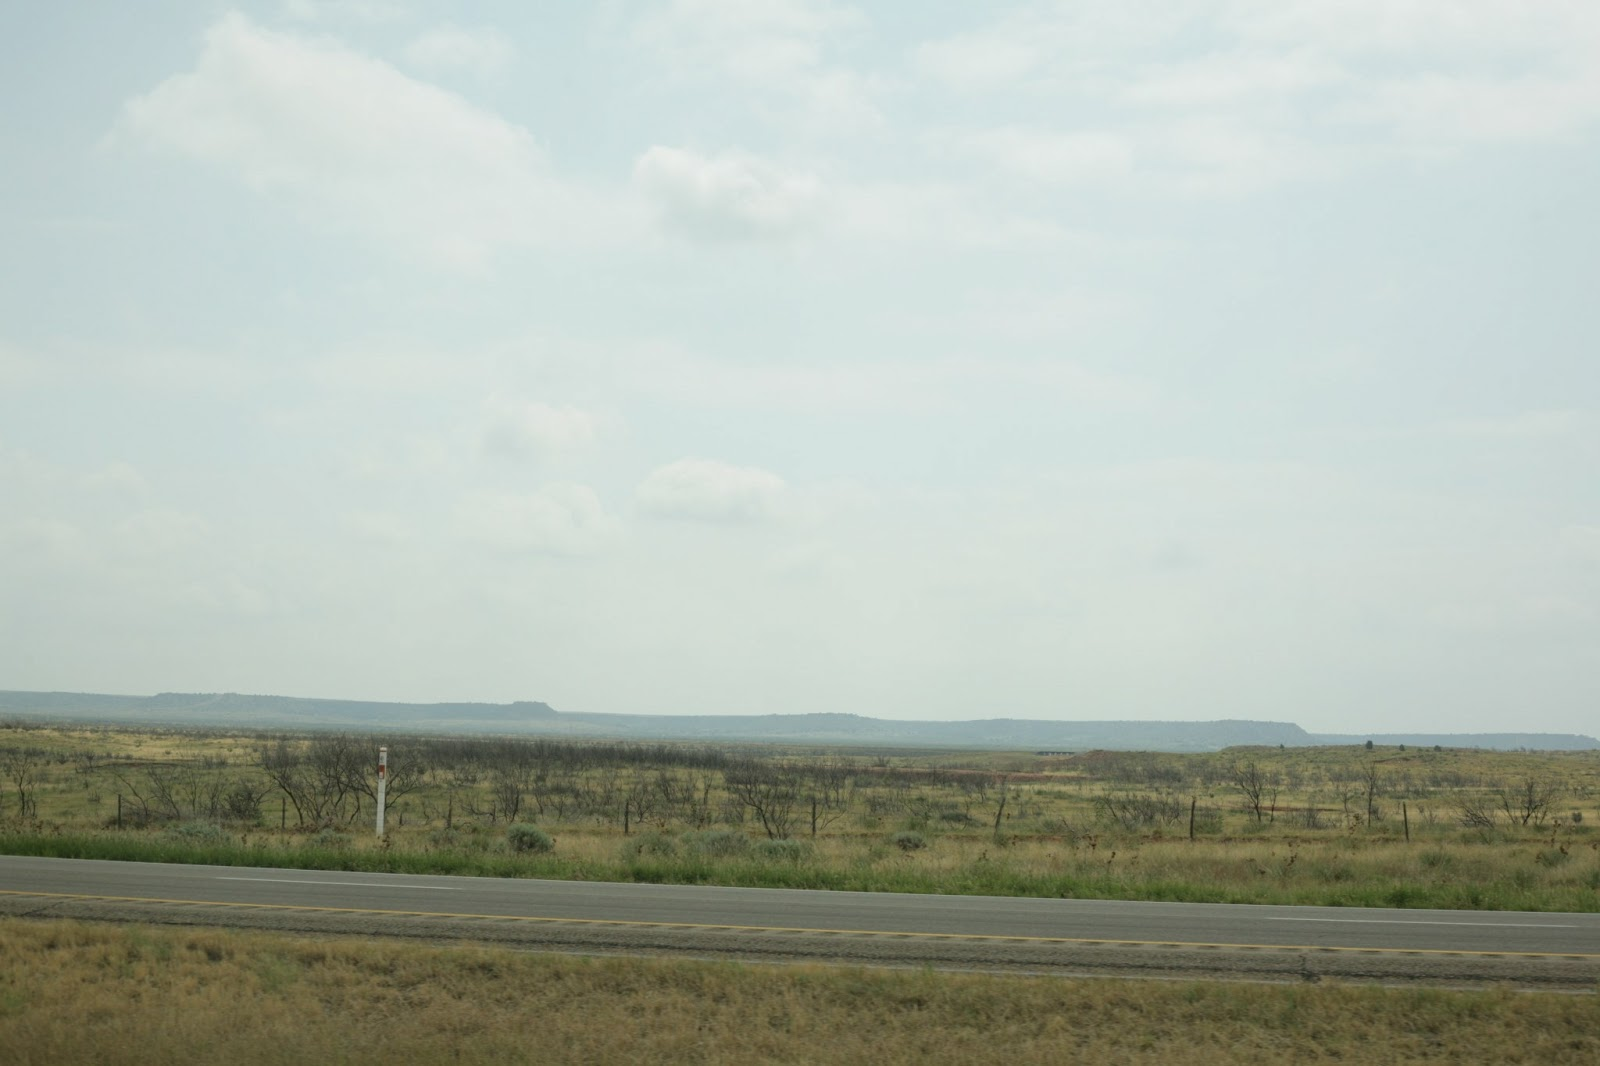 Interstate 40 in Texas panhandle